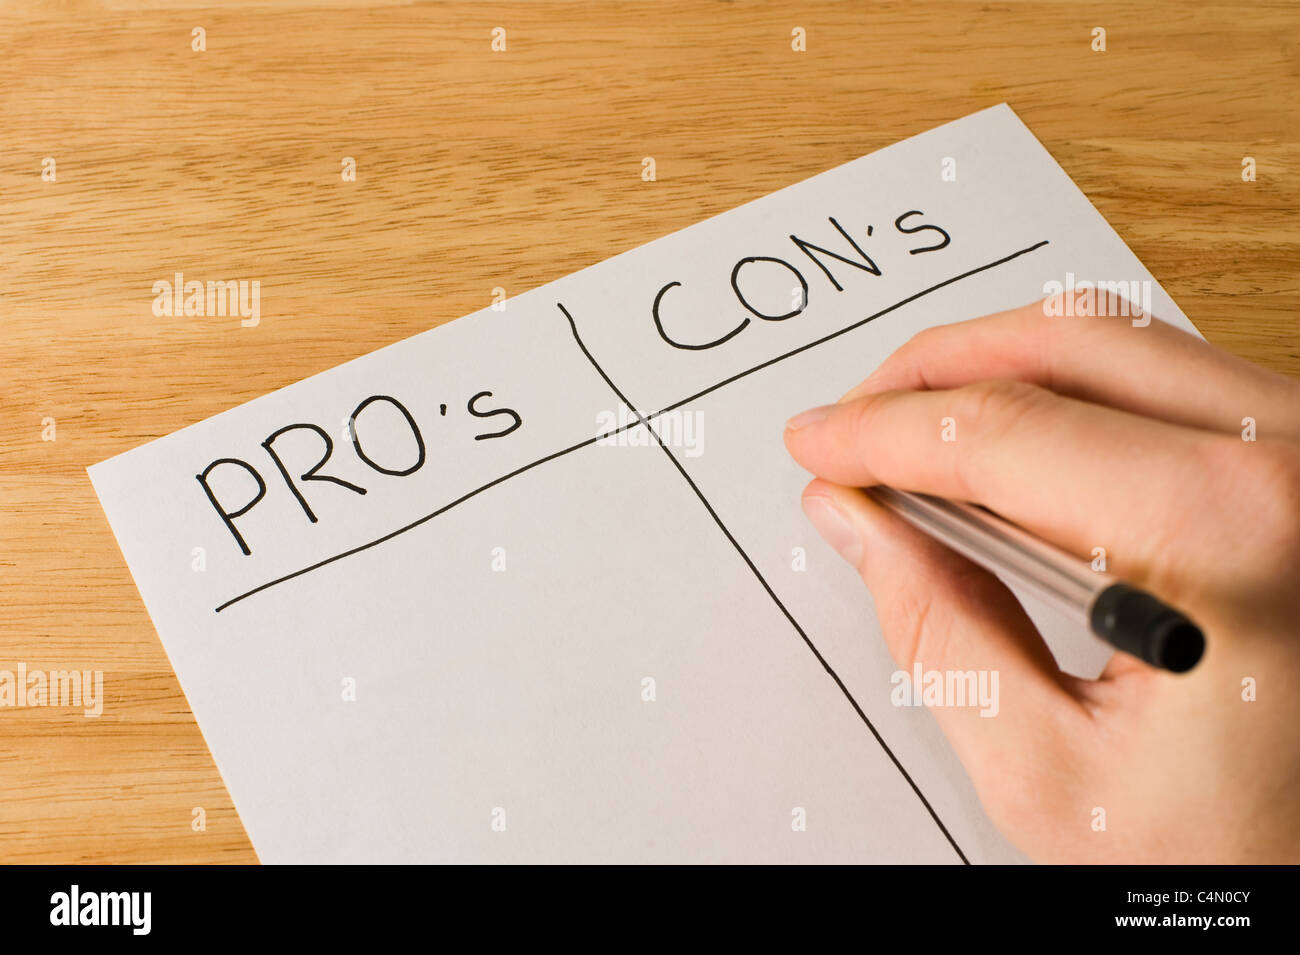 Business man weighing up the pro's and con's of a decision - Stock Image